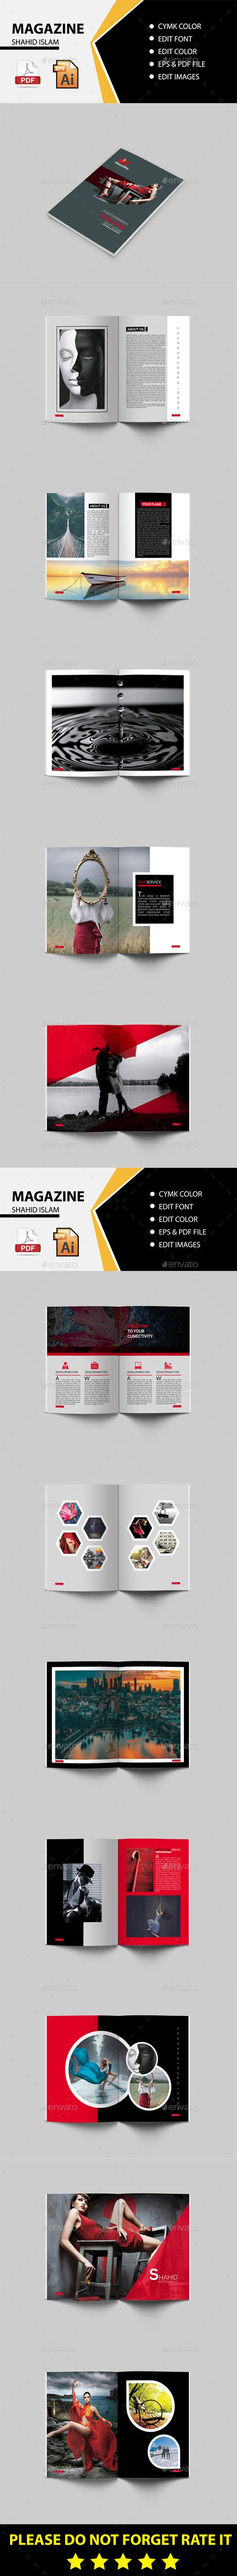 By: Shahid Islam Email: shahid.khan300995@gmail.com  Thanks for Parched Use following Fonts for looked Awesome. Font Used (Free) :